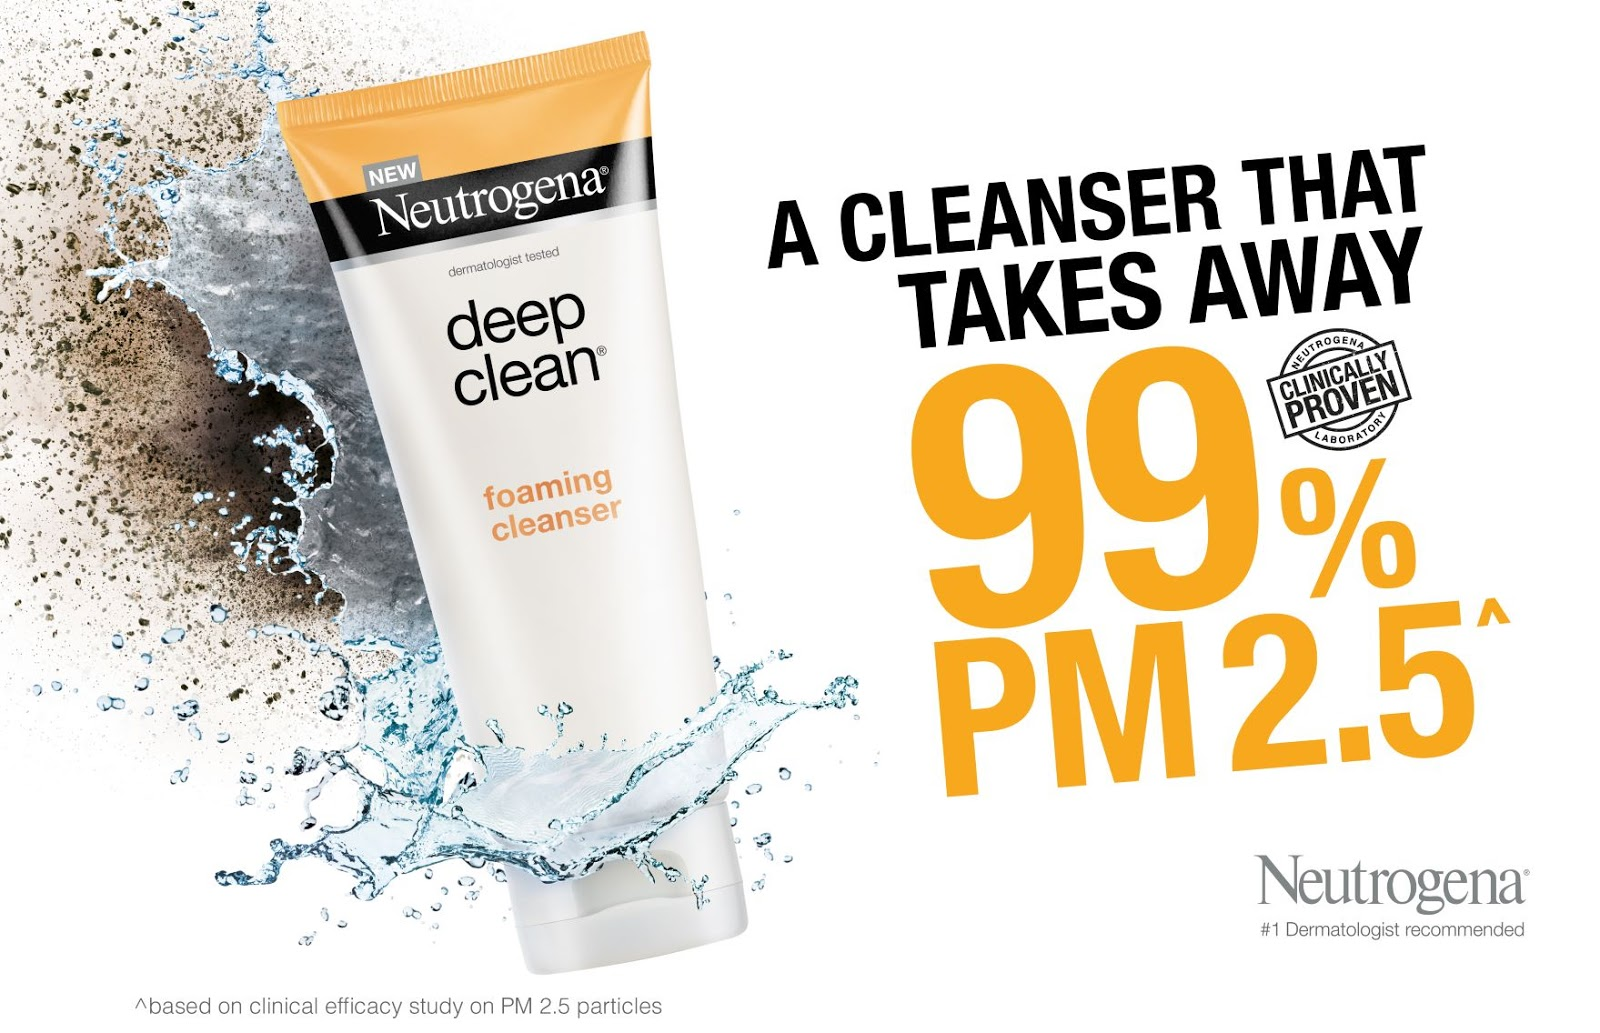 [Beauty Review] Neutrogena® Deep Clean® Foaming Cleanser that removes 99% of micro-pollutants